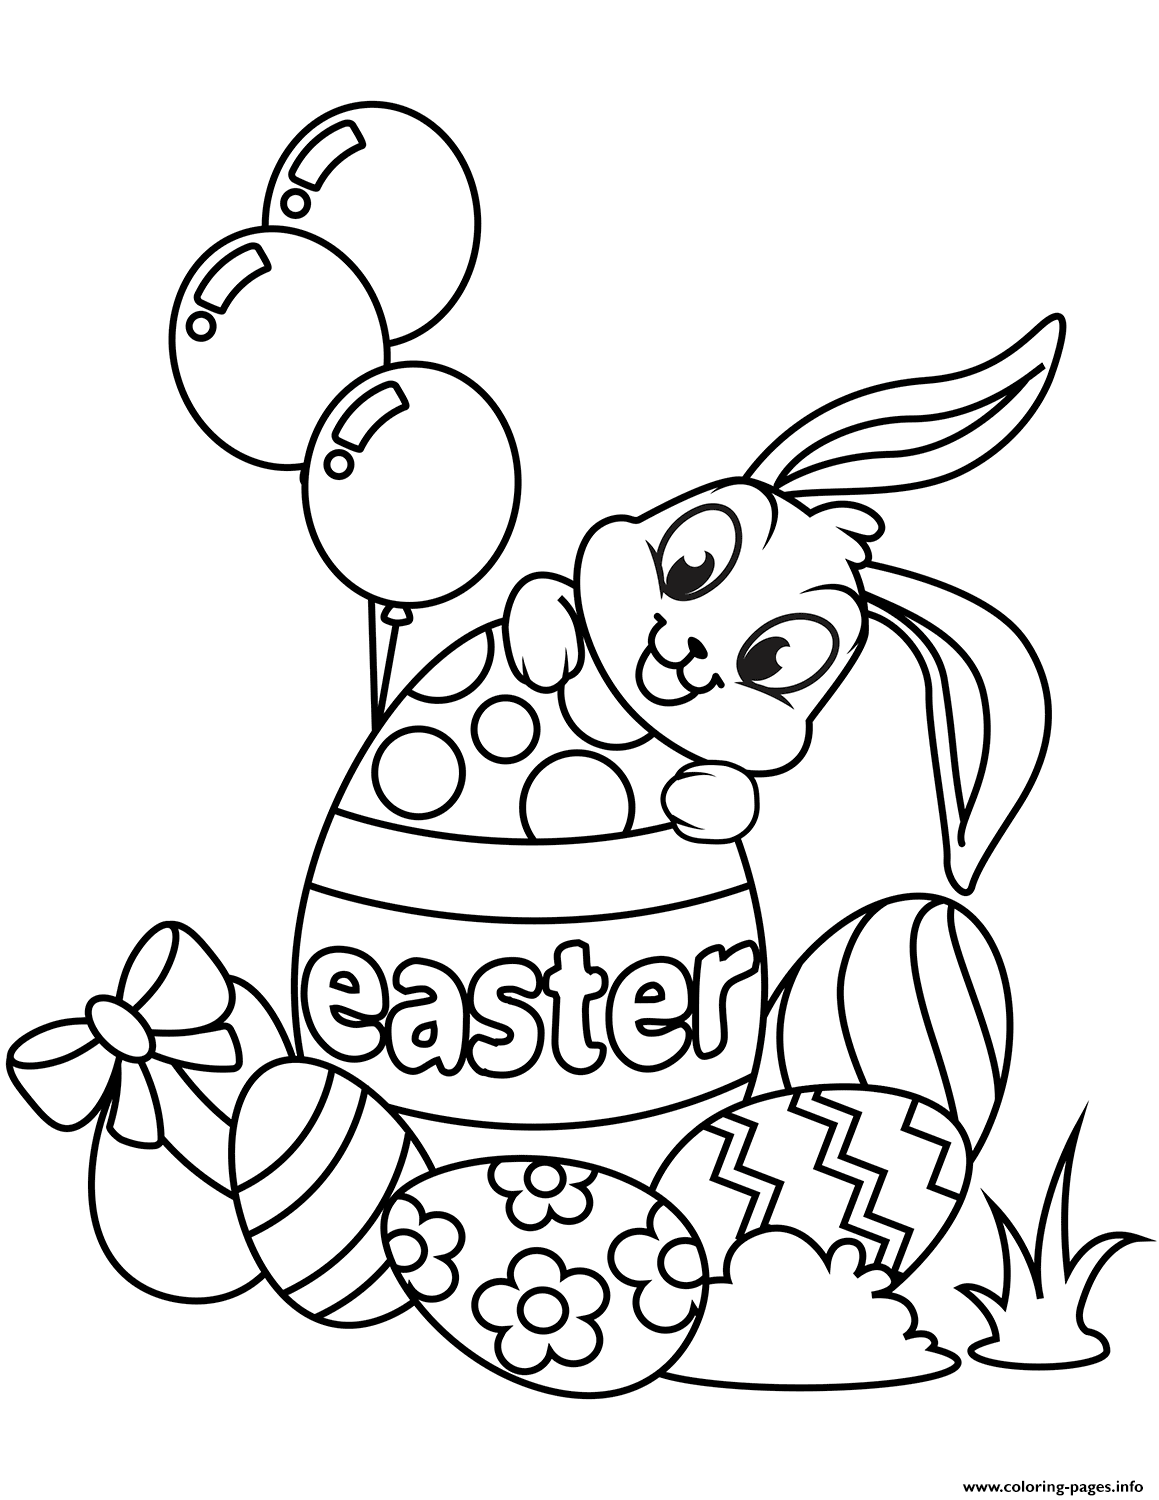 - Easter Bunny Coloring Pages Png & Free Easter Bunny Coloring Pages